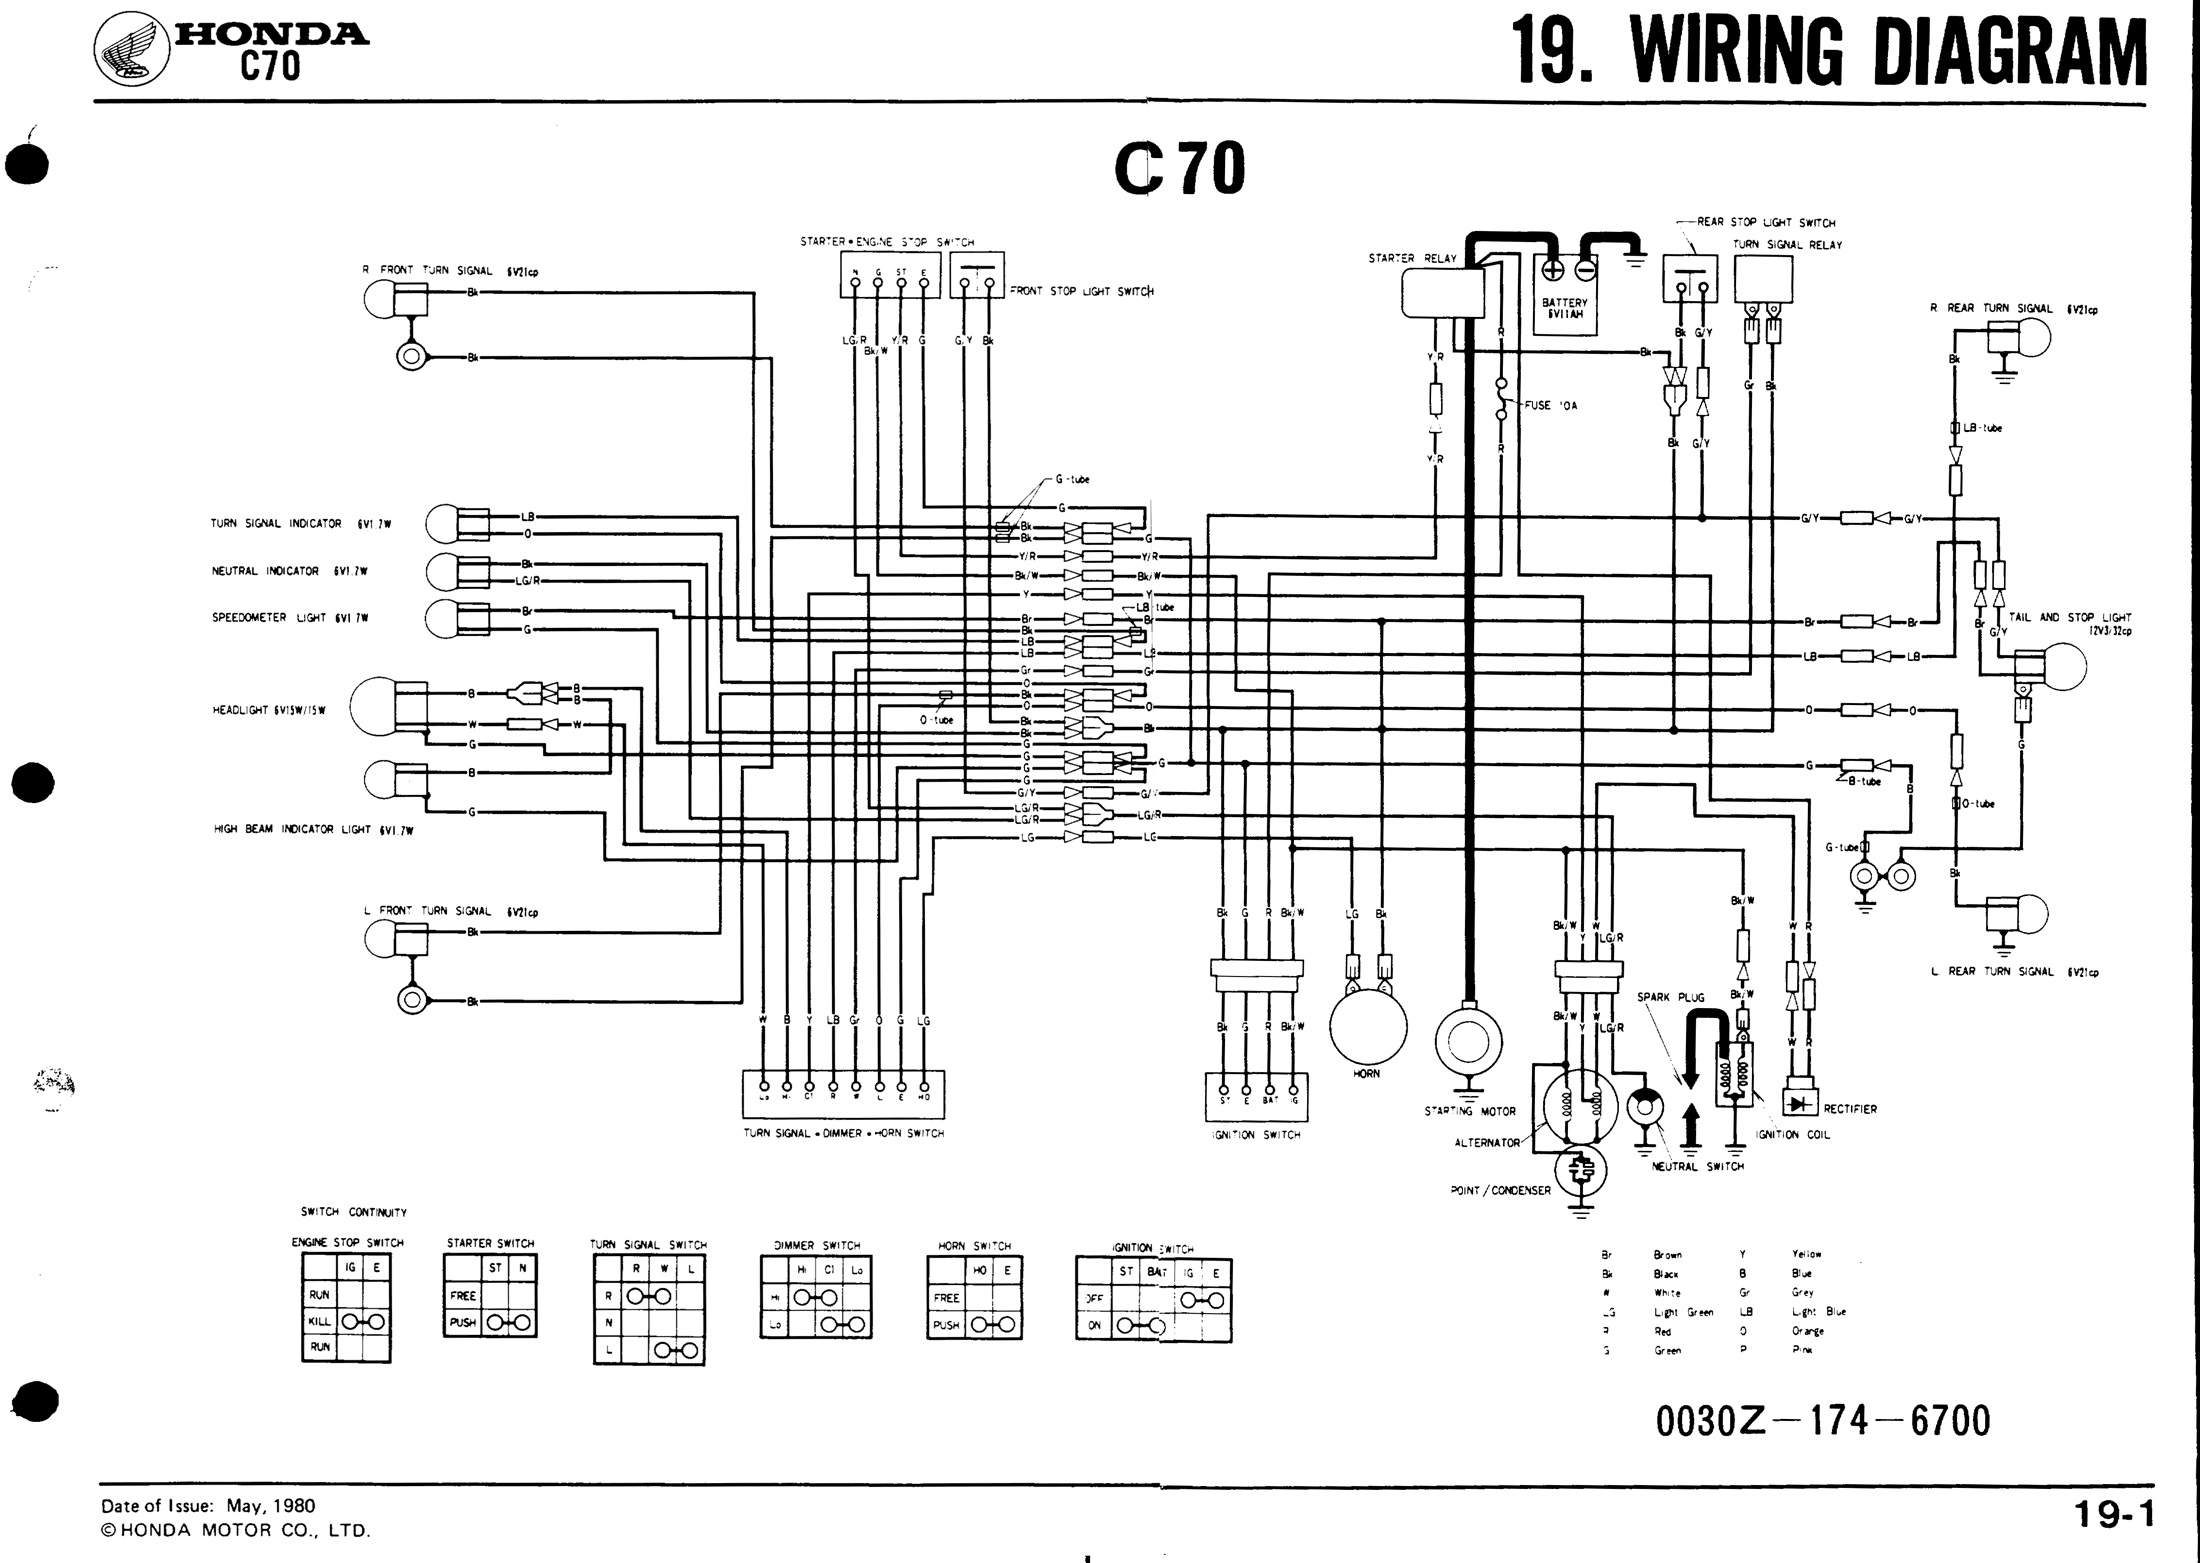 Honda Wiring Diagram 20 Images Diagrams Twister S 100 Hobbit Camino Toothed At